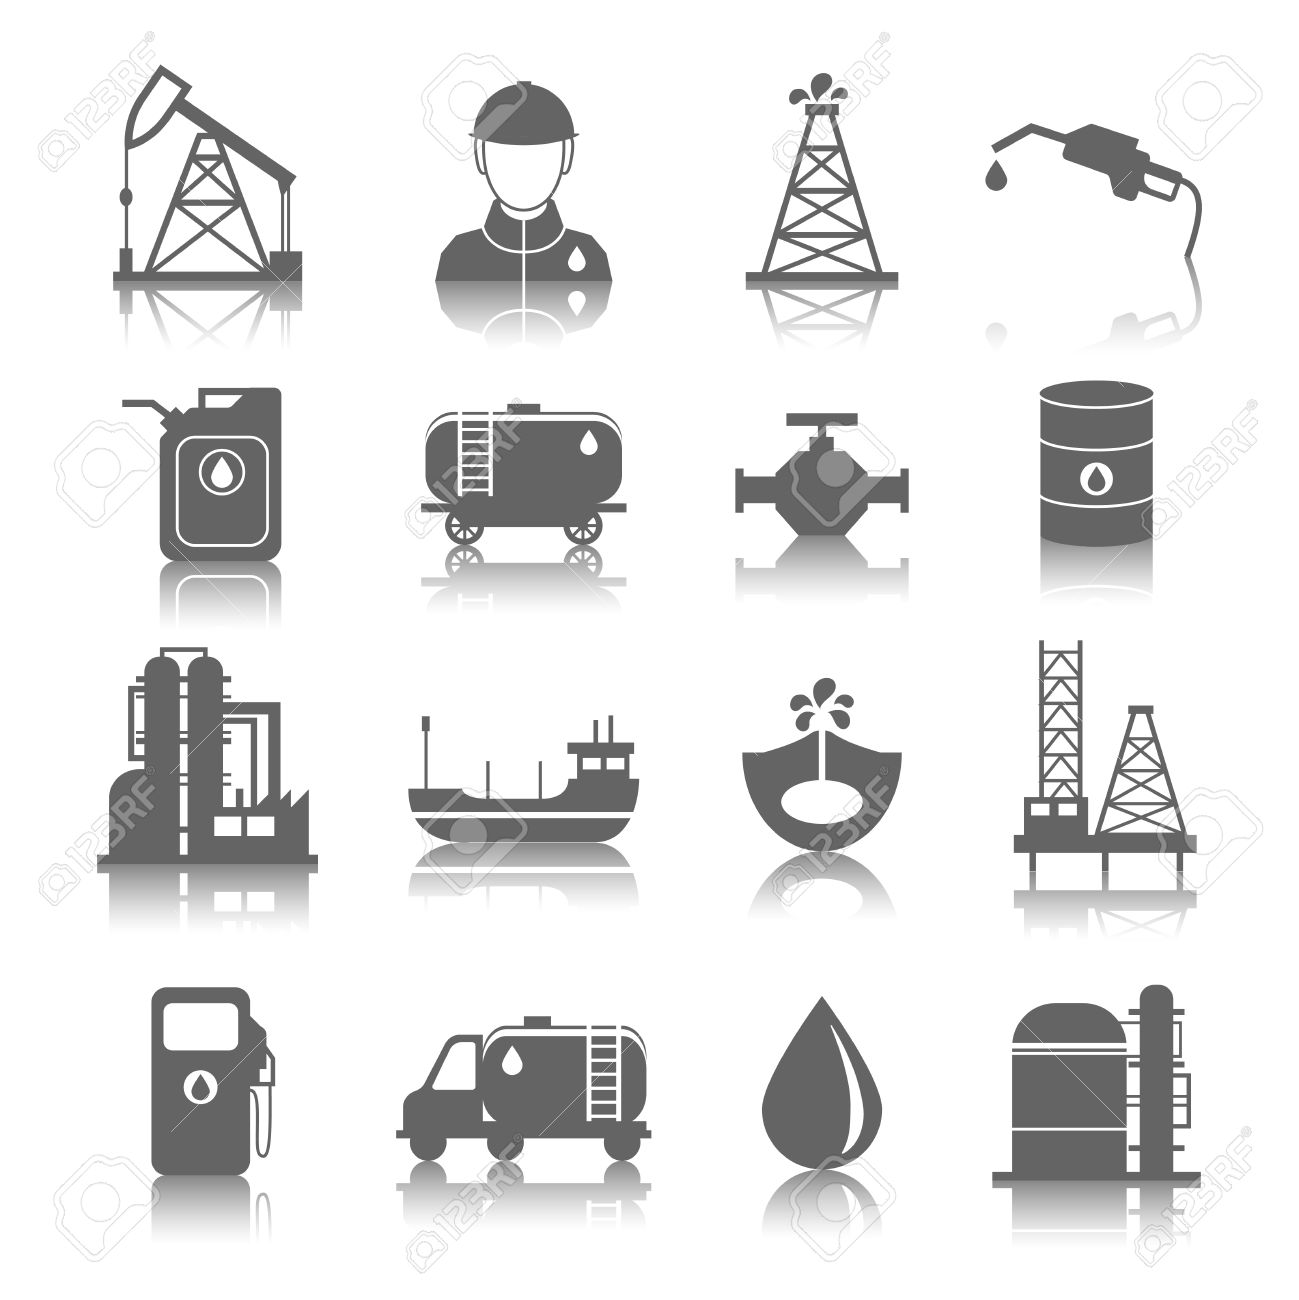 Crude Oil Tank Images, Stock Pictures, Royalty Free Crude Oil Tank.